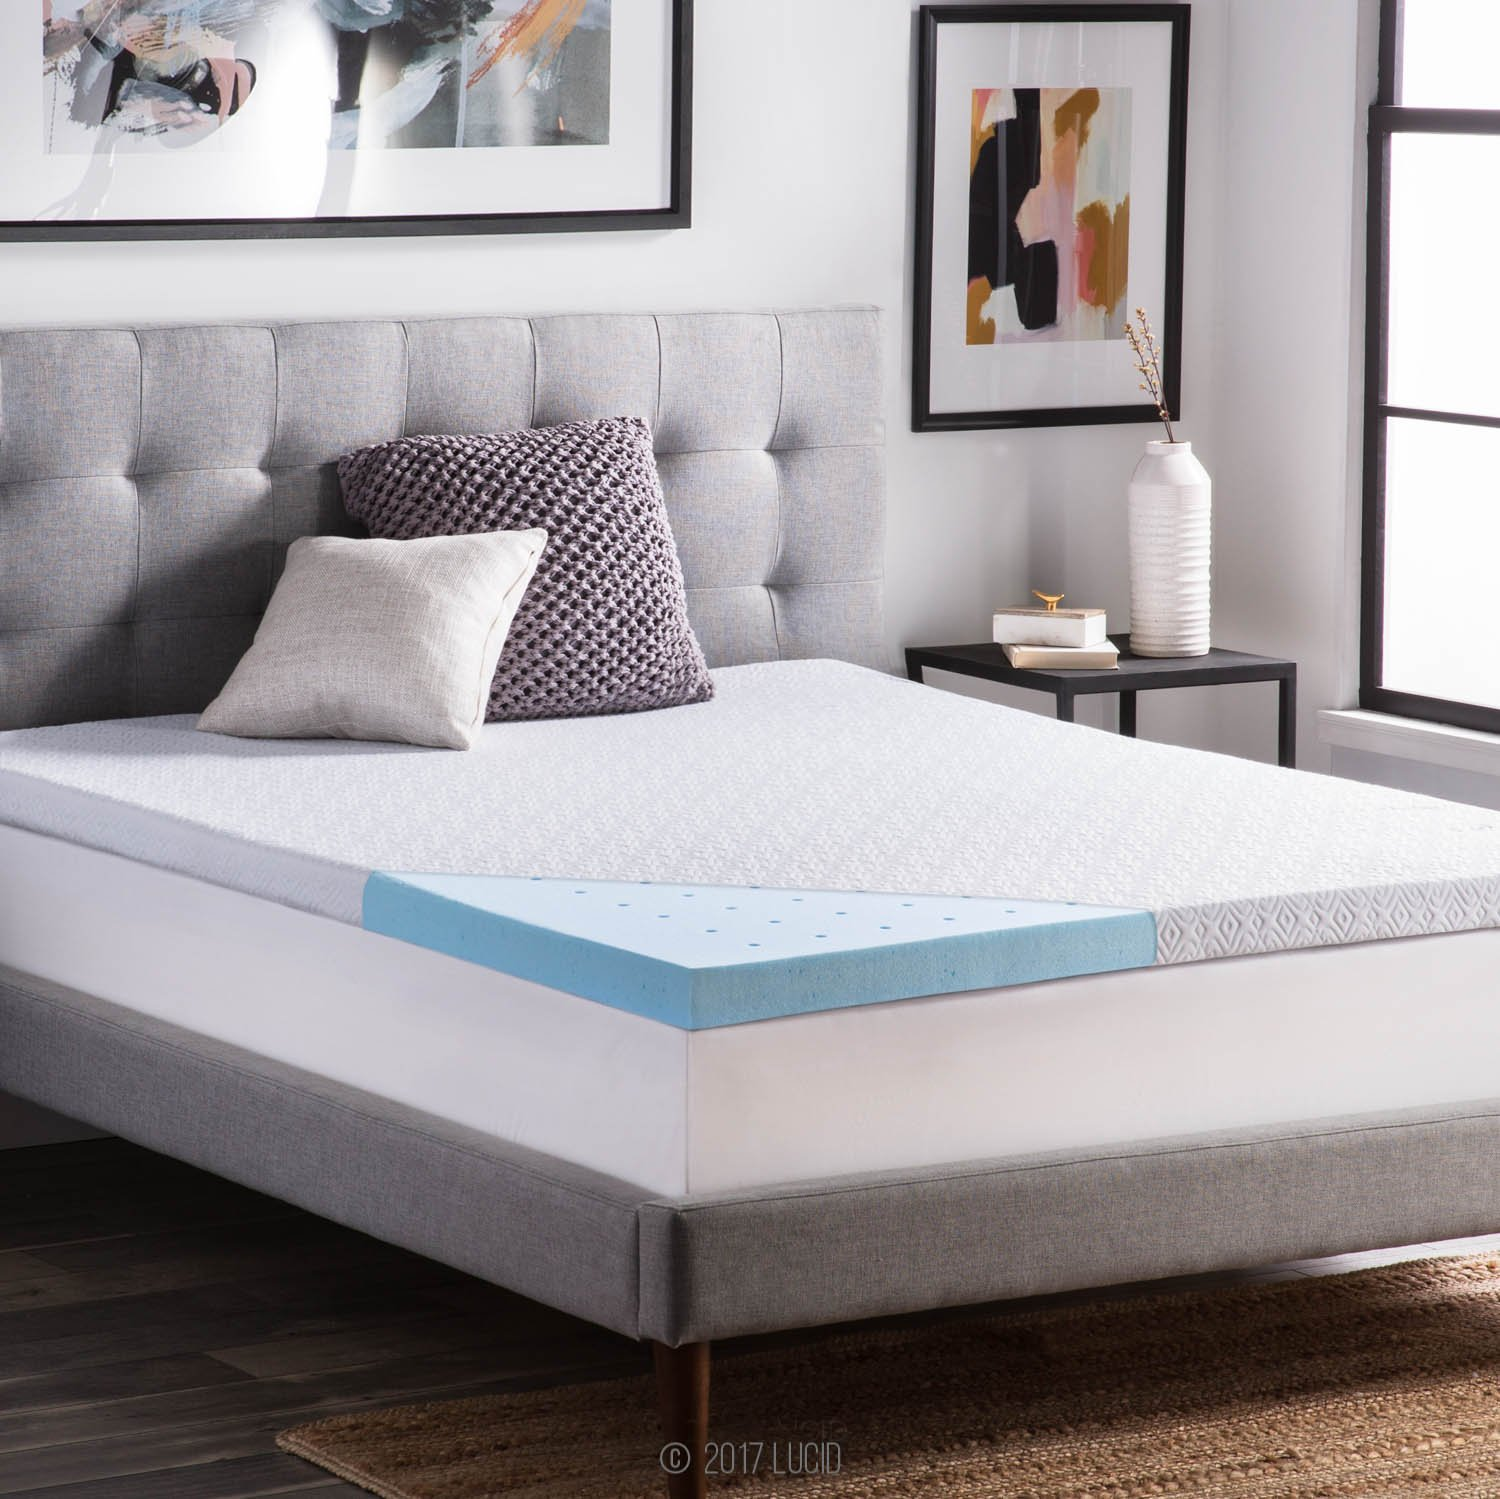 LUCID 2.5 Inch Gel Infused Ventilated Memory Foam Mattress Topper with Removable Tencel Blend Cover 3-Year U.S. Warranty - Twin XL Size